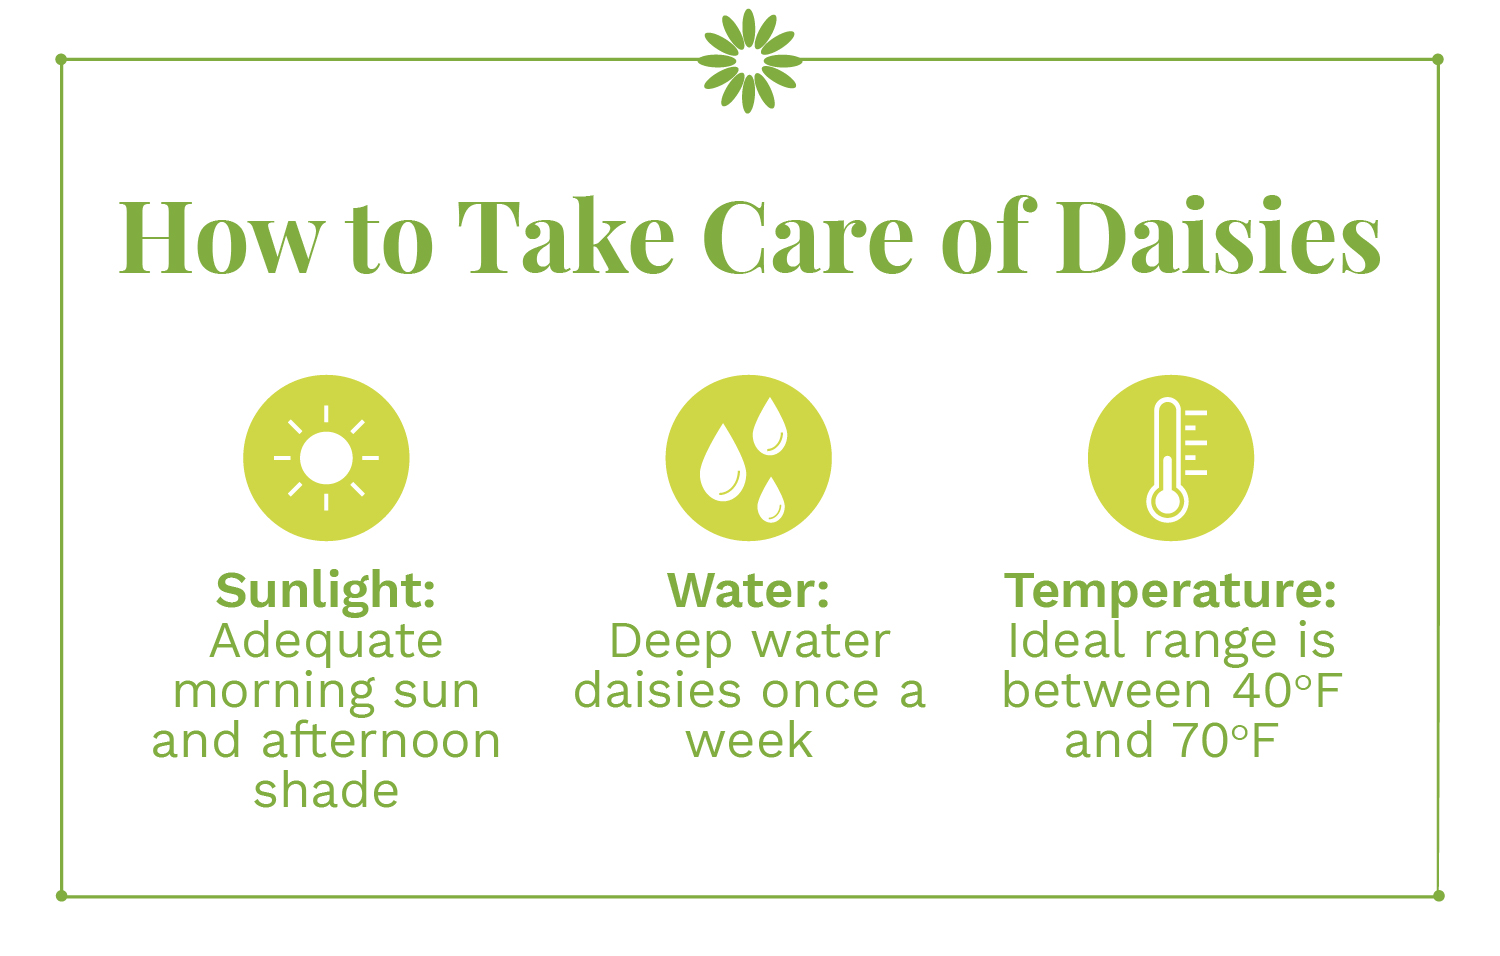 instructions on how to take care of daisies